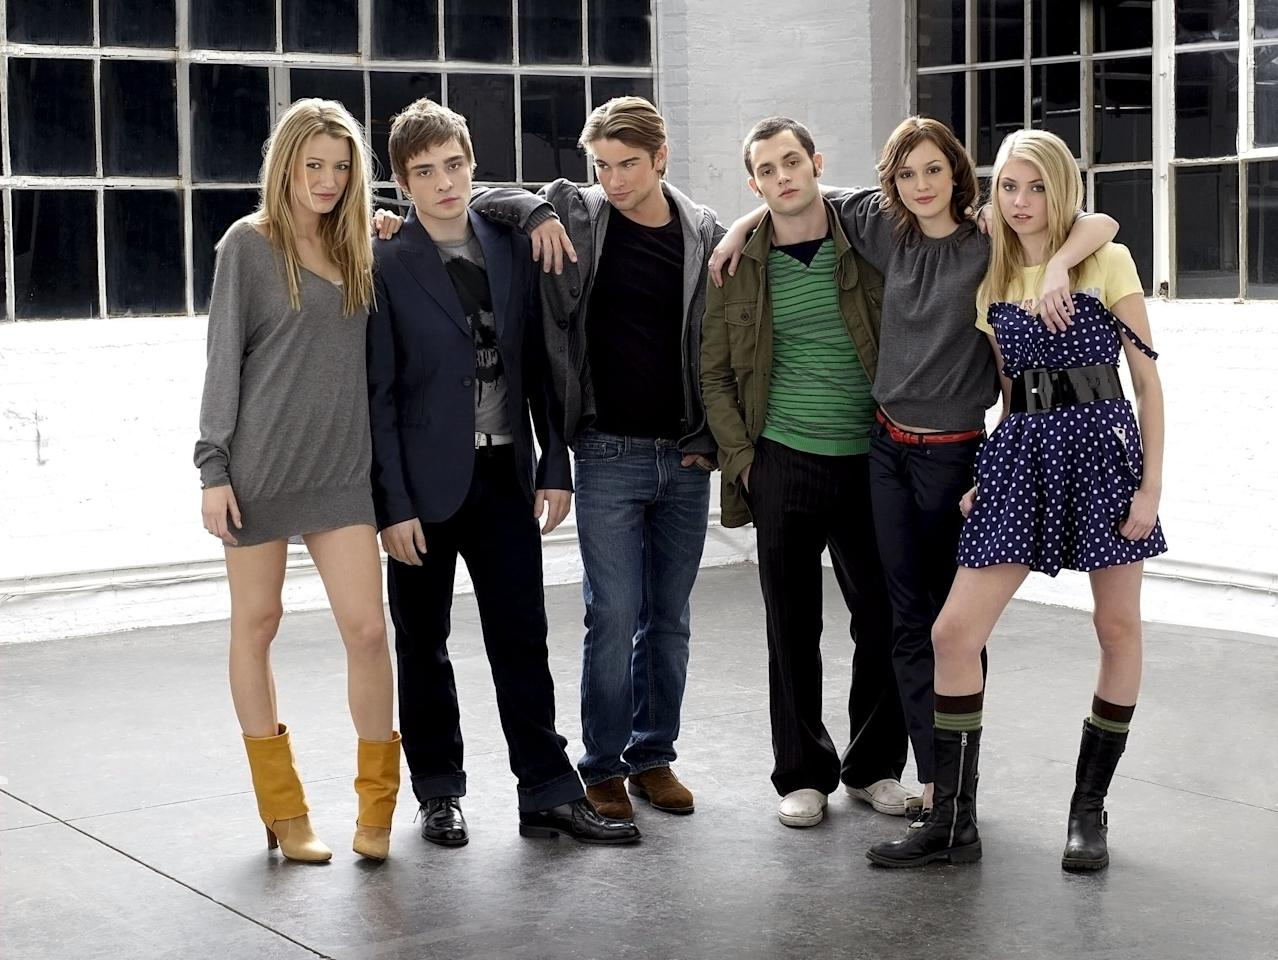 """<p>Since the series is a continuation of the 2007 series, there's a chance that the original stars might make cameos. During the TCAs, Schwartz confirmed that he's reached out to the cast about making an appearance on the spinoff. """"We would love for them to be involved if they want to be involved,"""" he said. """"But [we] certainly didn't want to make it contingent upon their [participation]. They played those characters for six years, and if they felt like they were good with that, we wanted to respect that. But obviously, it would be great to see them again."""" </p> <p>Even if some of the stars don't reprise their roles, we assume there will be a few nods to their beloved characters on the spinoff, like how Blair Waldorf is running her fashion empire or how Nate Archibald is now the mayor of NYC. </p>"""